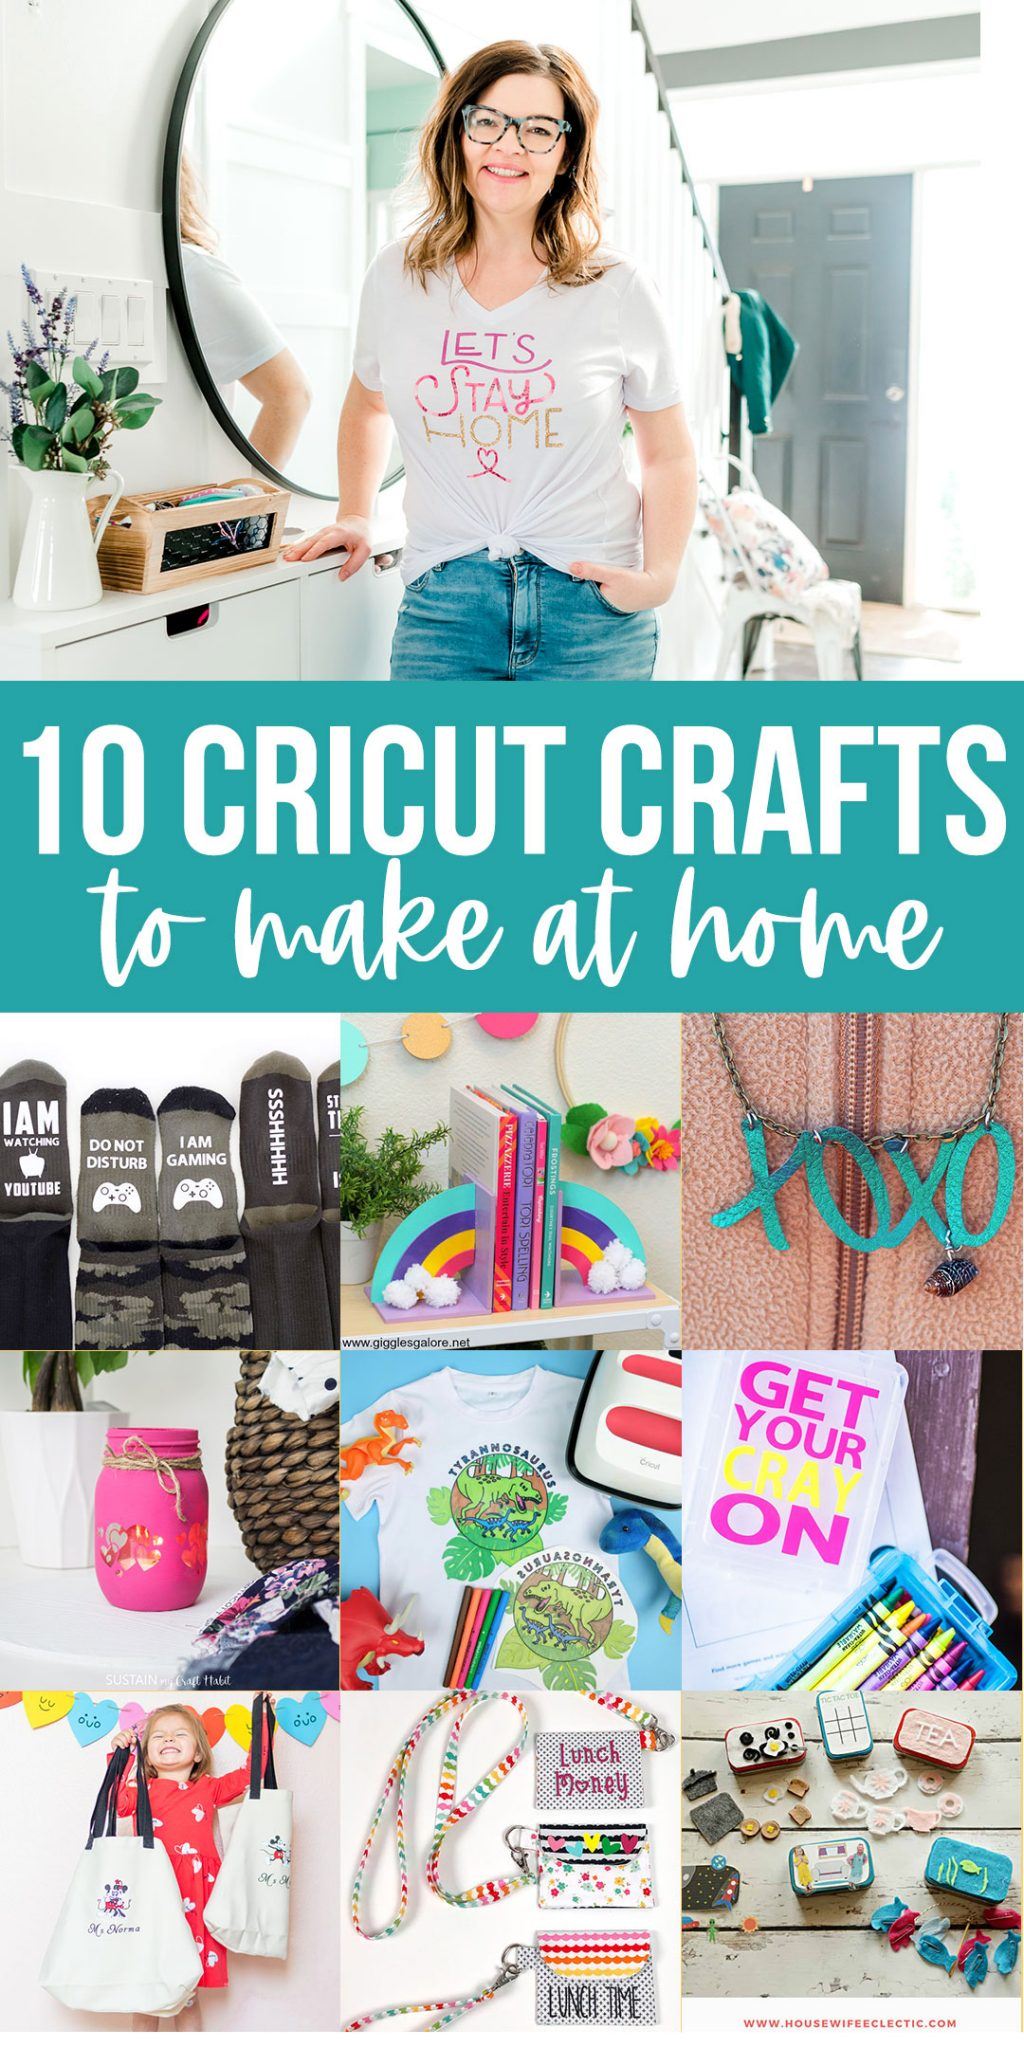 These Cricut DIY craft projects use little material so you can make them with what you have at home.